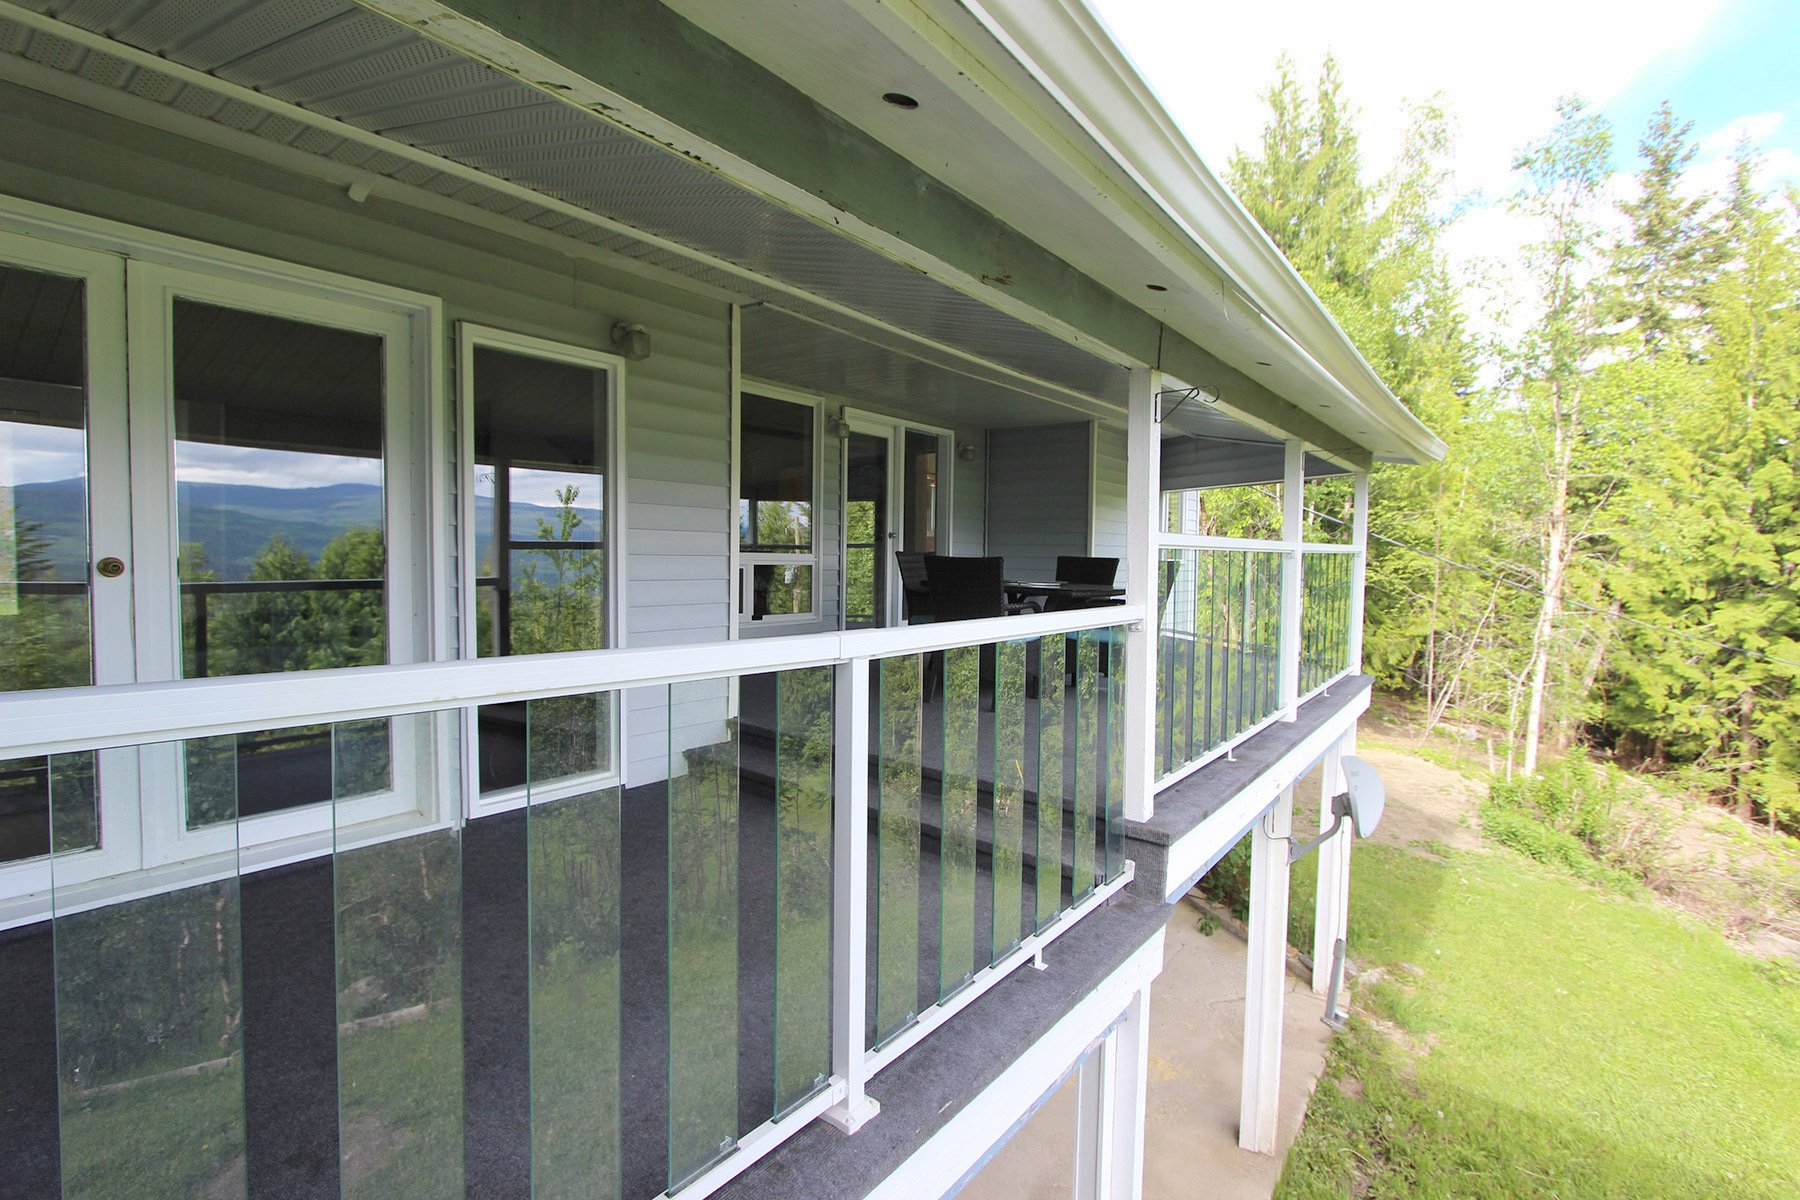 Photo 50: Photos: 6831 Magna Bay Drive in Magna Bay: House with Acreage for sale : MLS®# 10205520